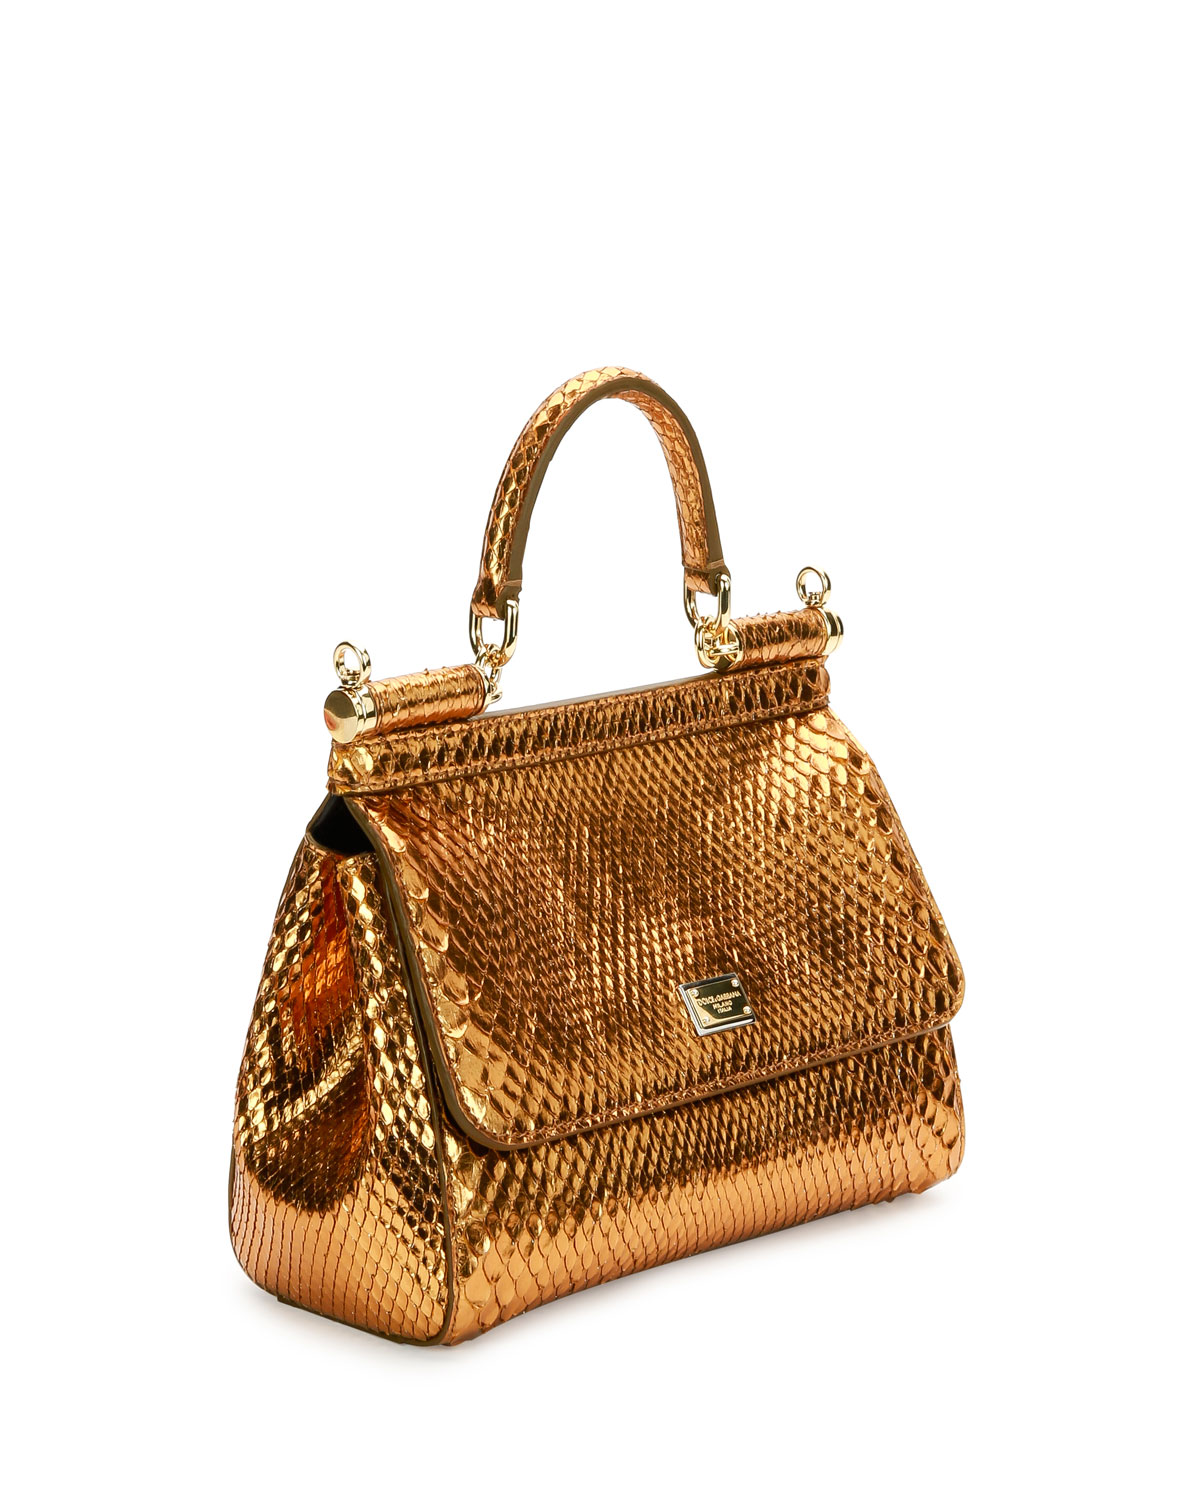 Dolce Gabbana Miss Sicily Small Metallic Python Satchel Bag Gold Neiman Marcus